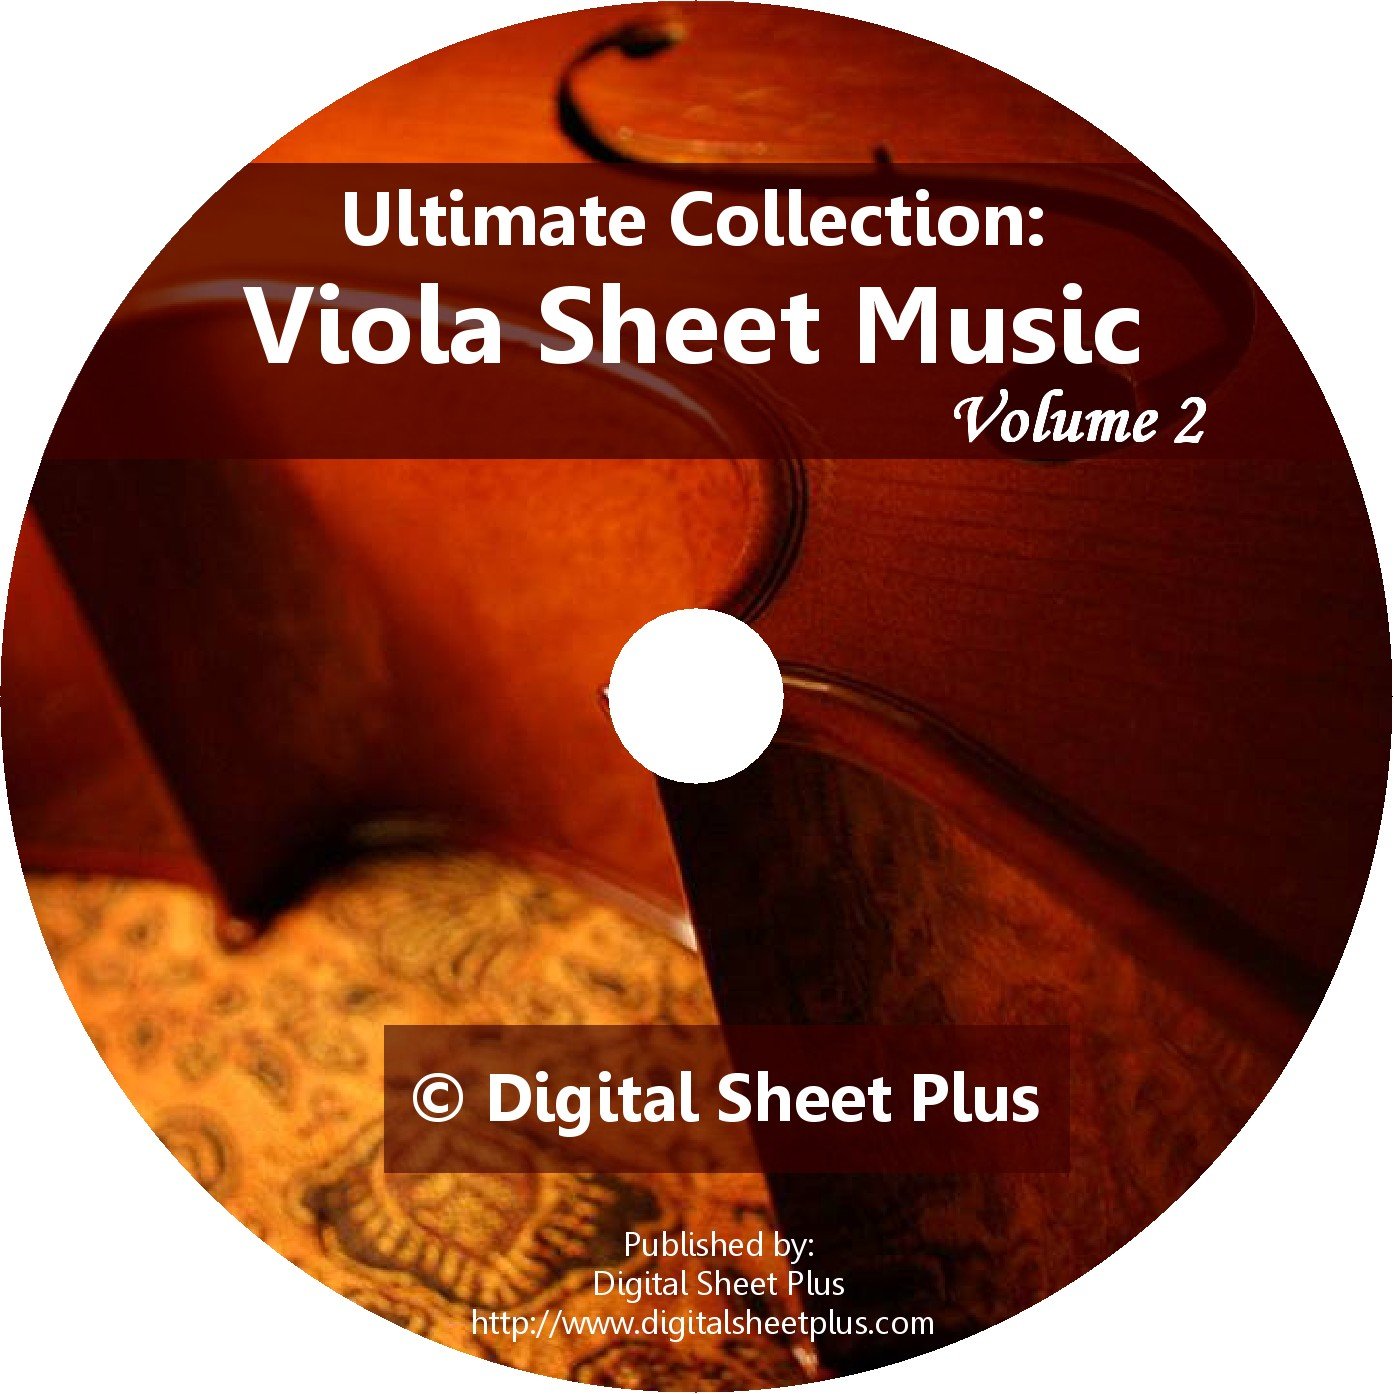 viola_collection_vol.2_cd_cover.jpg